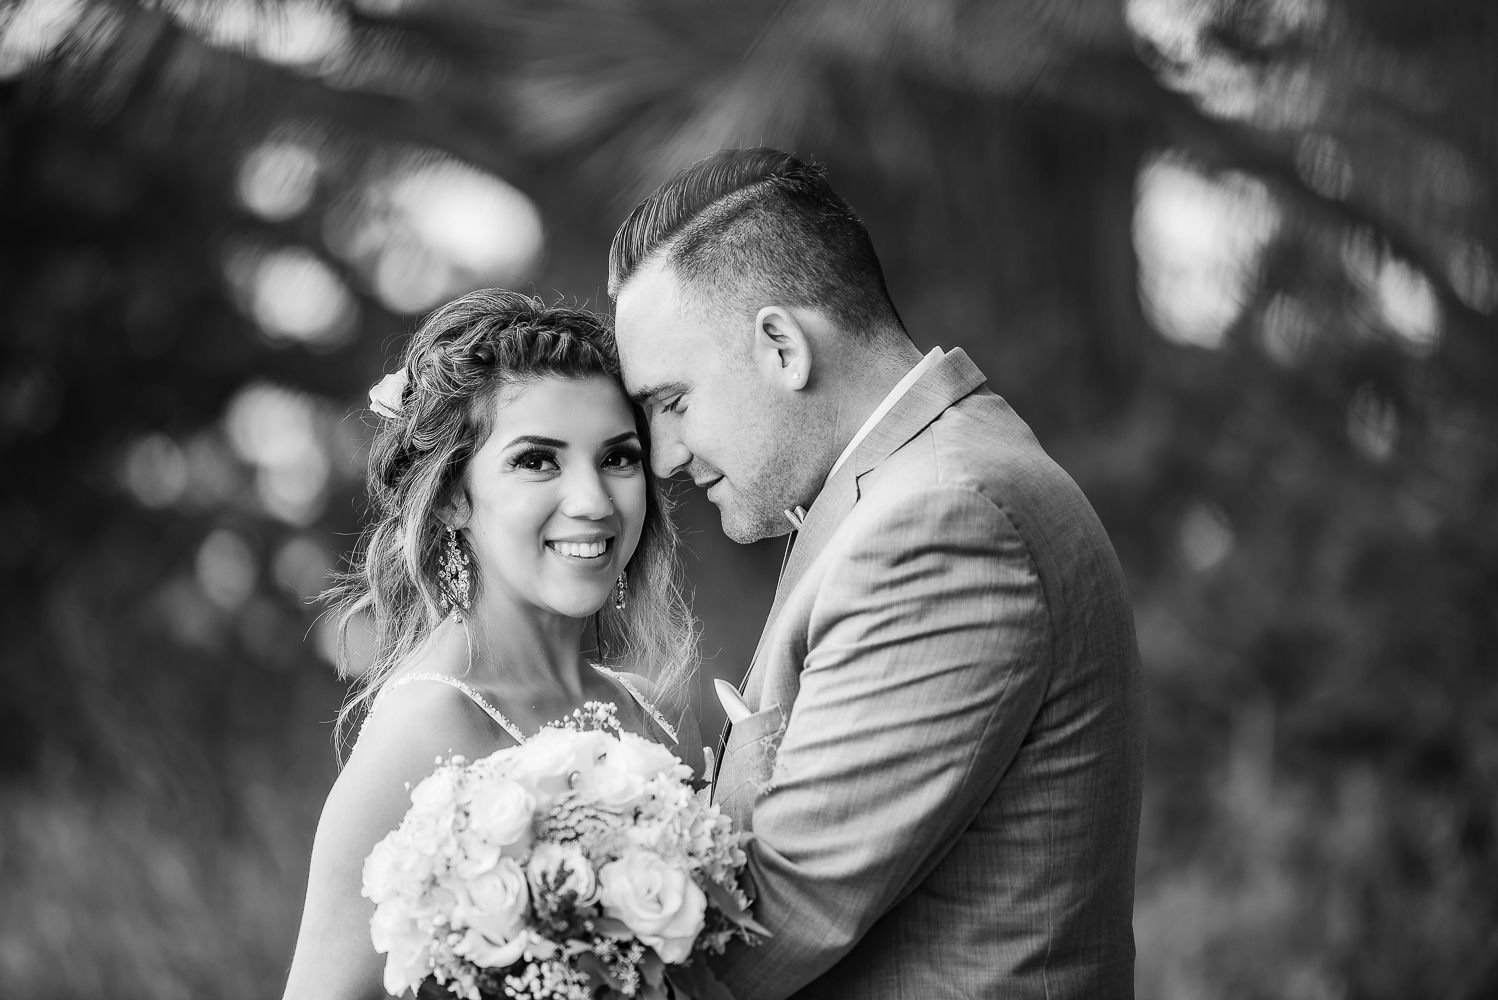 Parky's Pics Wedding & Portrait Photography 2017-Humboldt County Wedding Photographer-14.jpg